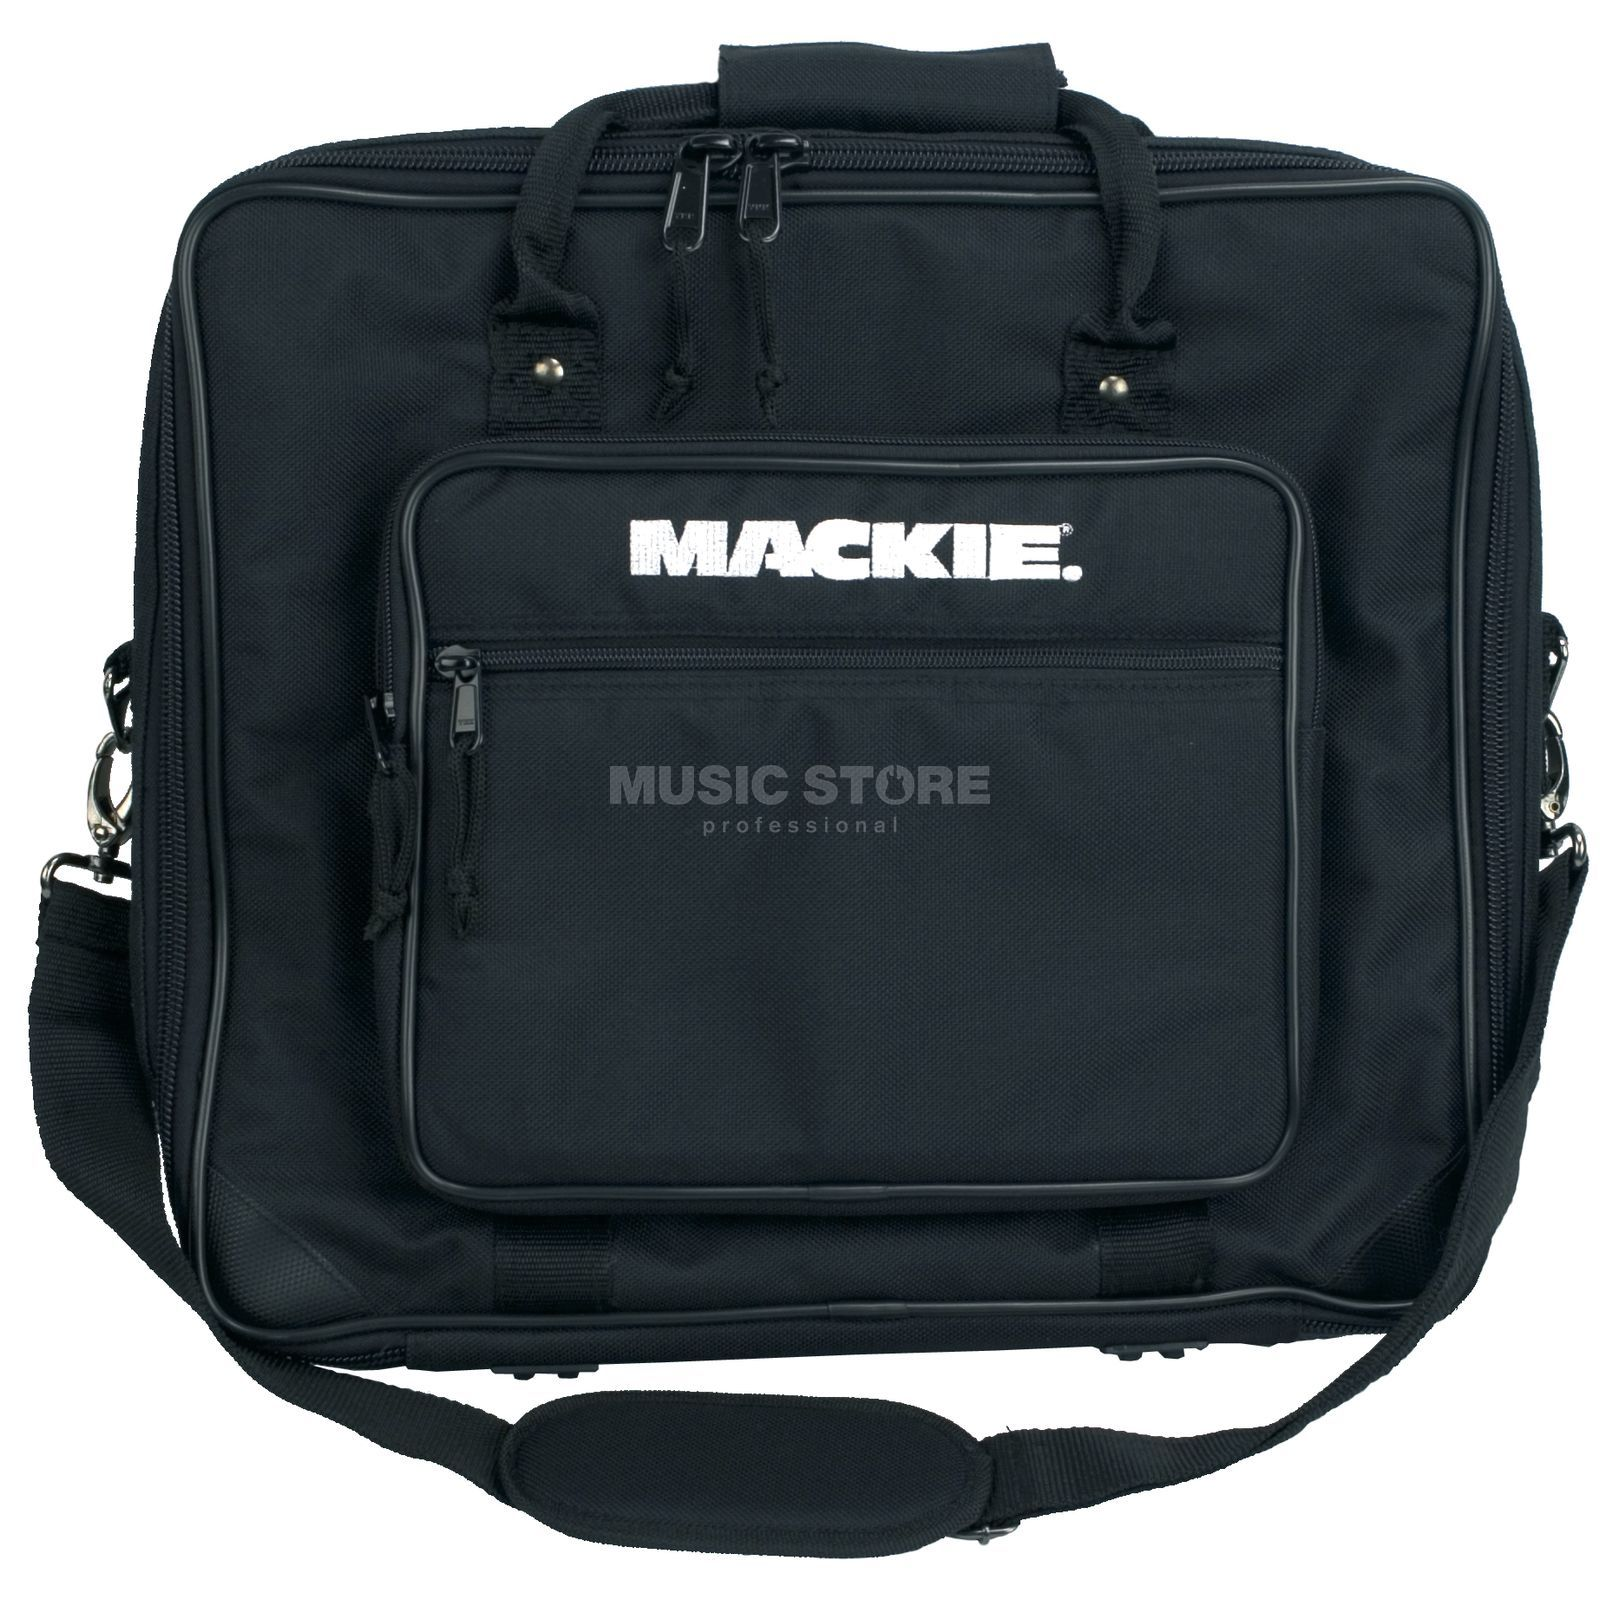 Mackie DFX 12 Bag Carry Bag for Mackie DFX 12 Mixer Product Image